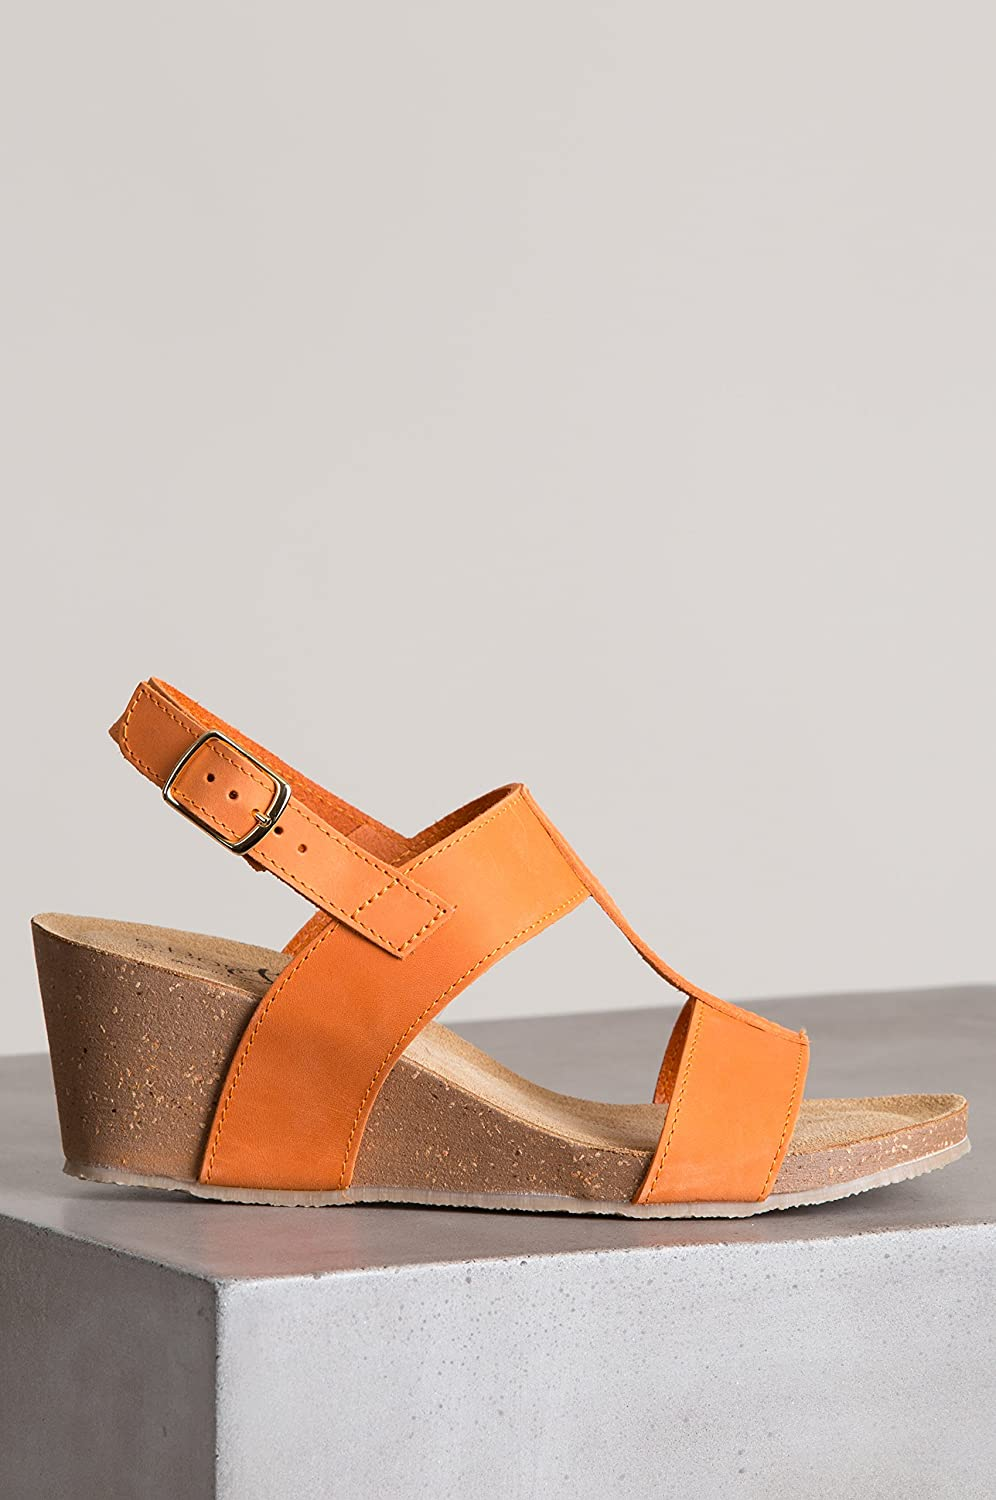 Bos. & Co.. Women's Lust Italian Leather EU37|Orange T-Strap Wedge Sandals B07C22PQB7 EU37|Orange Leather f7da79